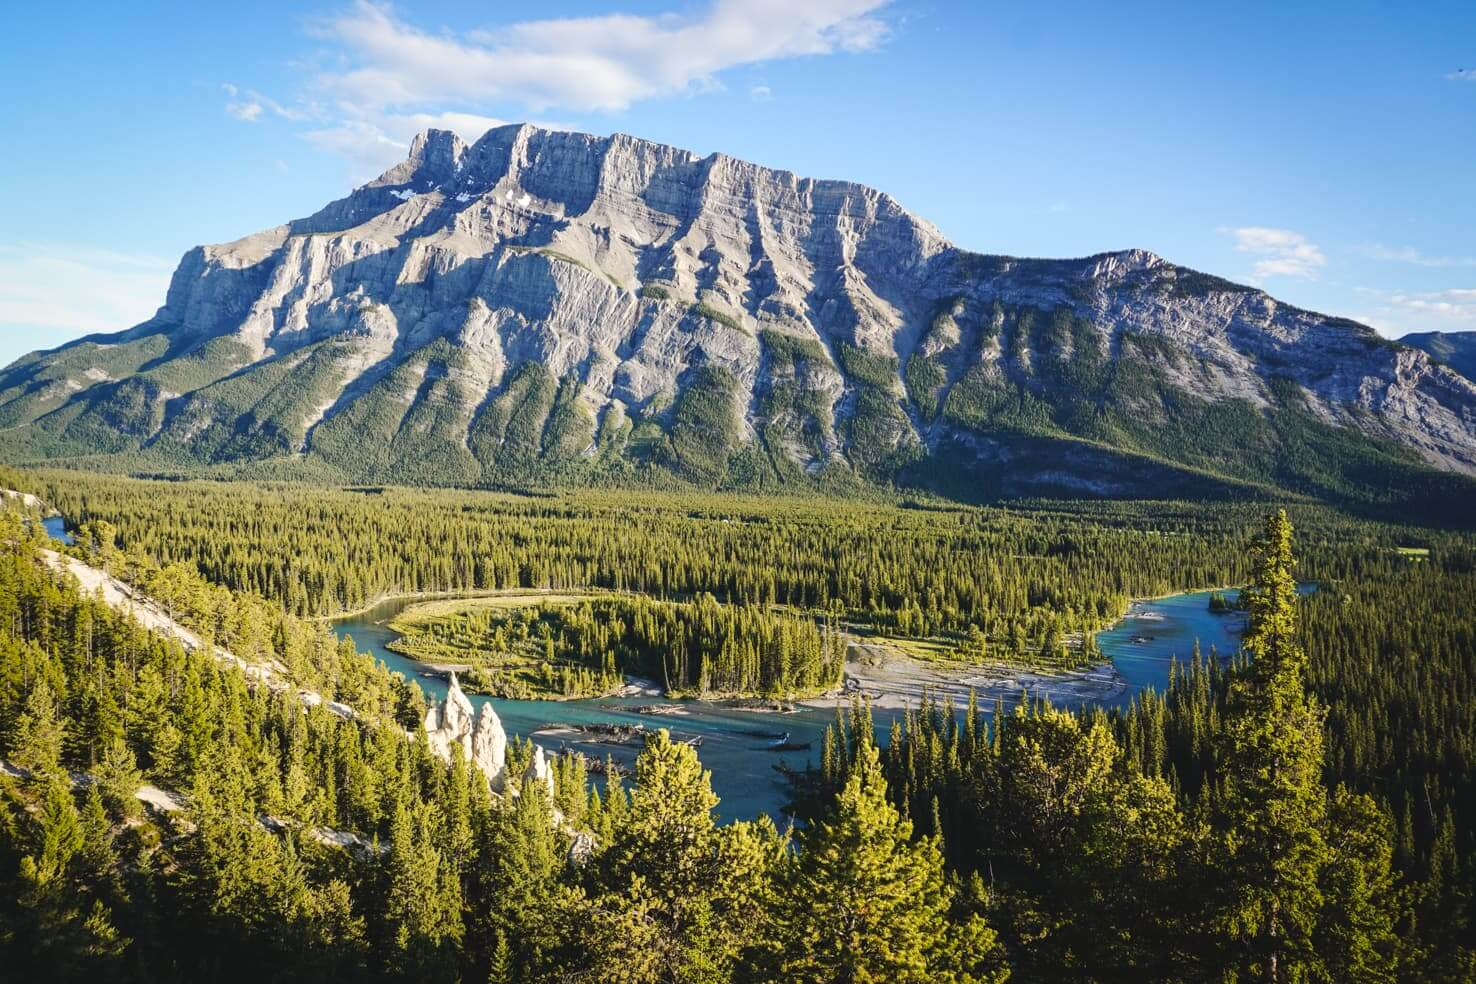 Camping in Banff National Park - Hoodoos